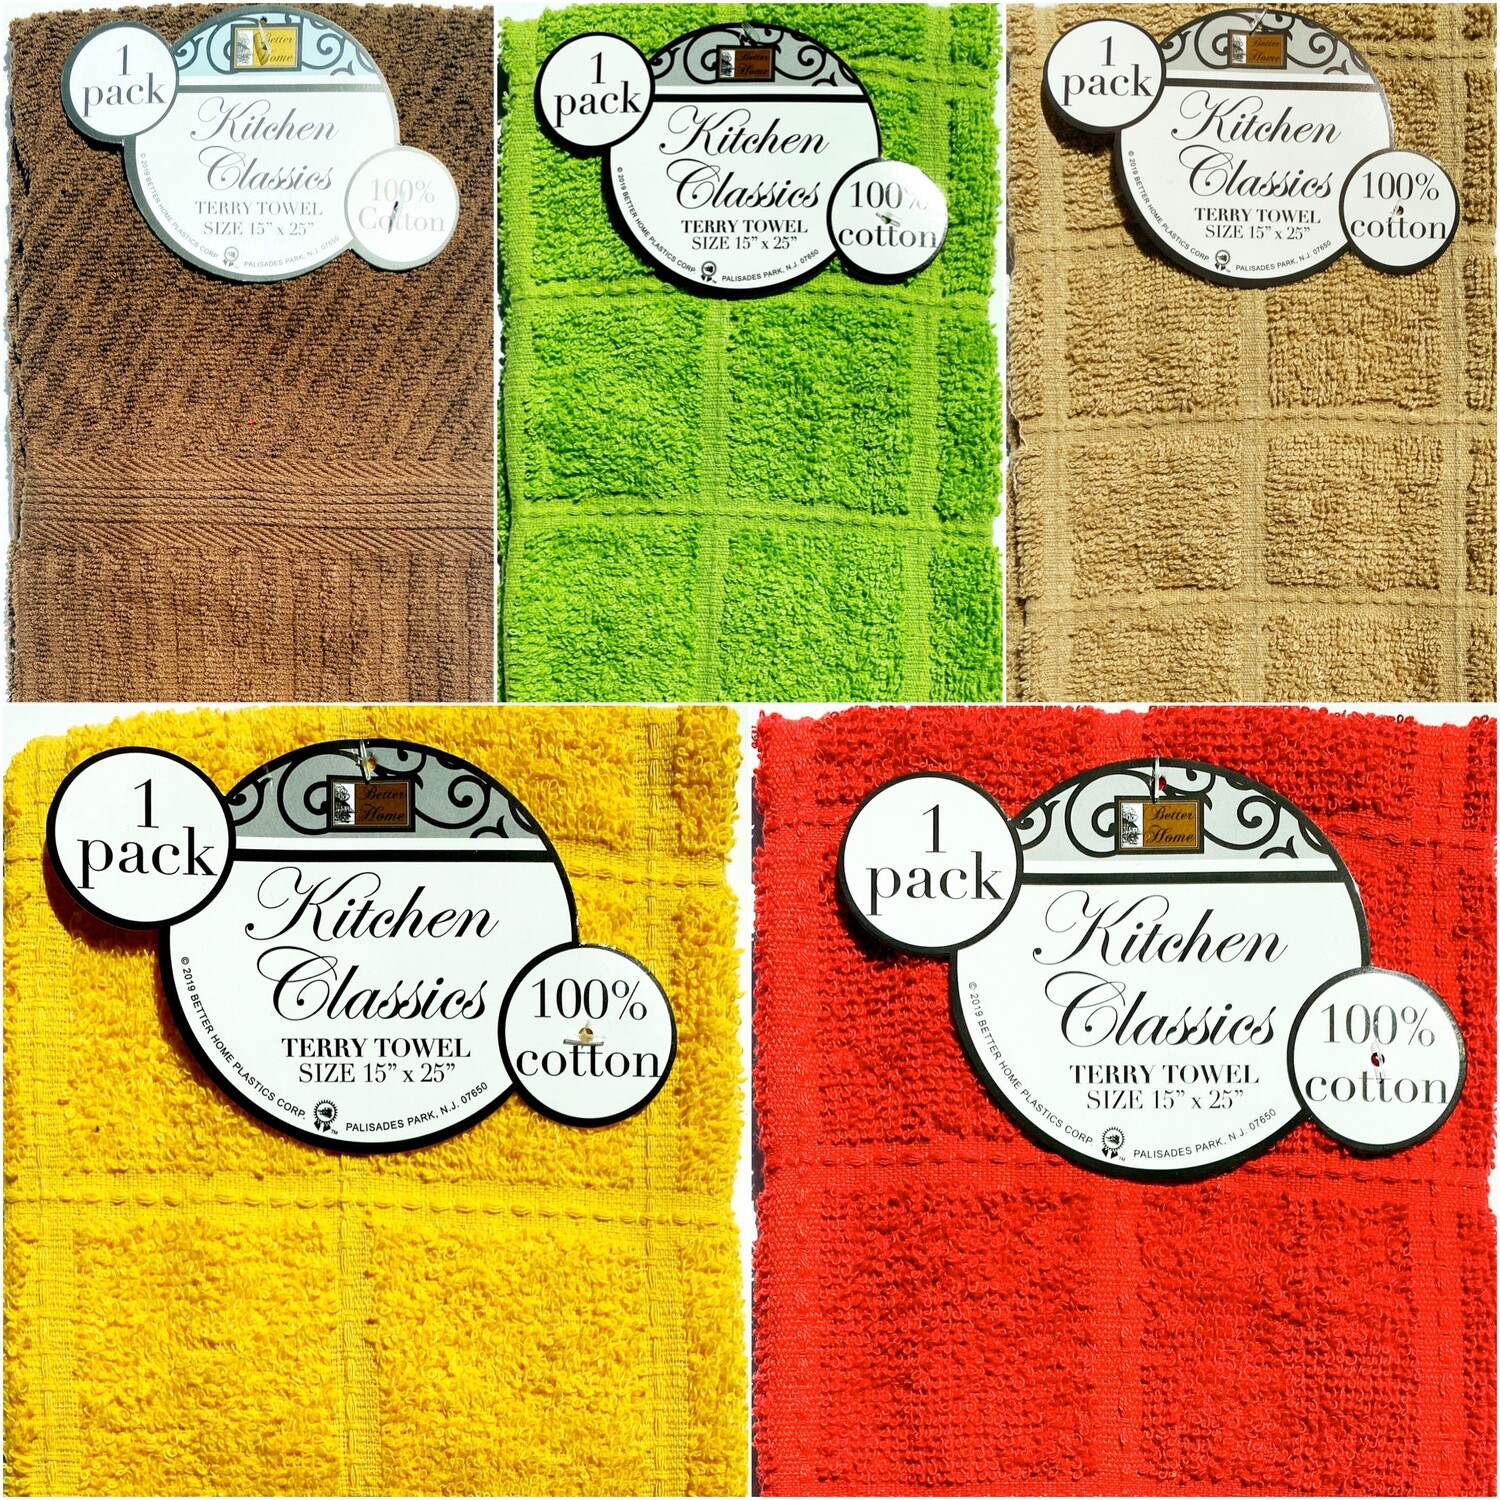 Deluxe Hand Towel: Solid Colors 1pk